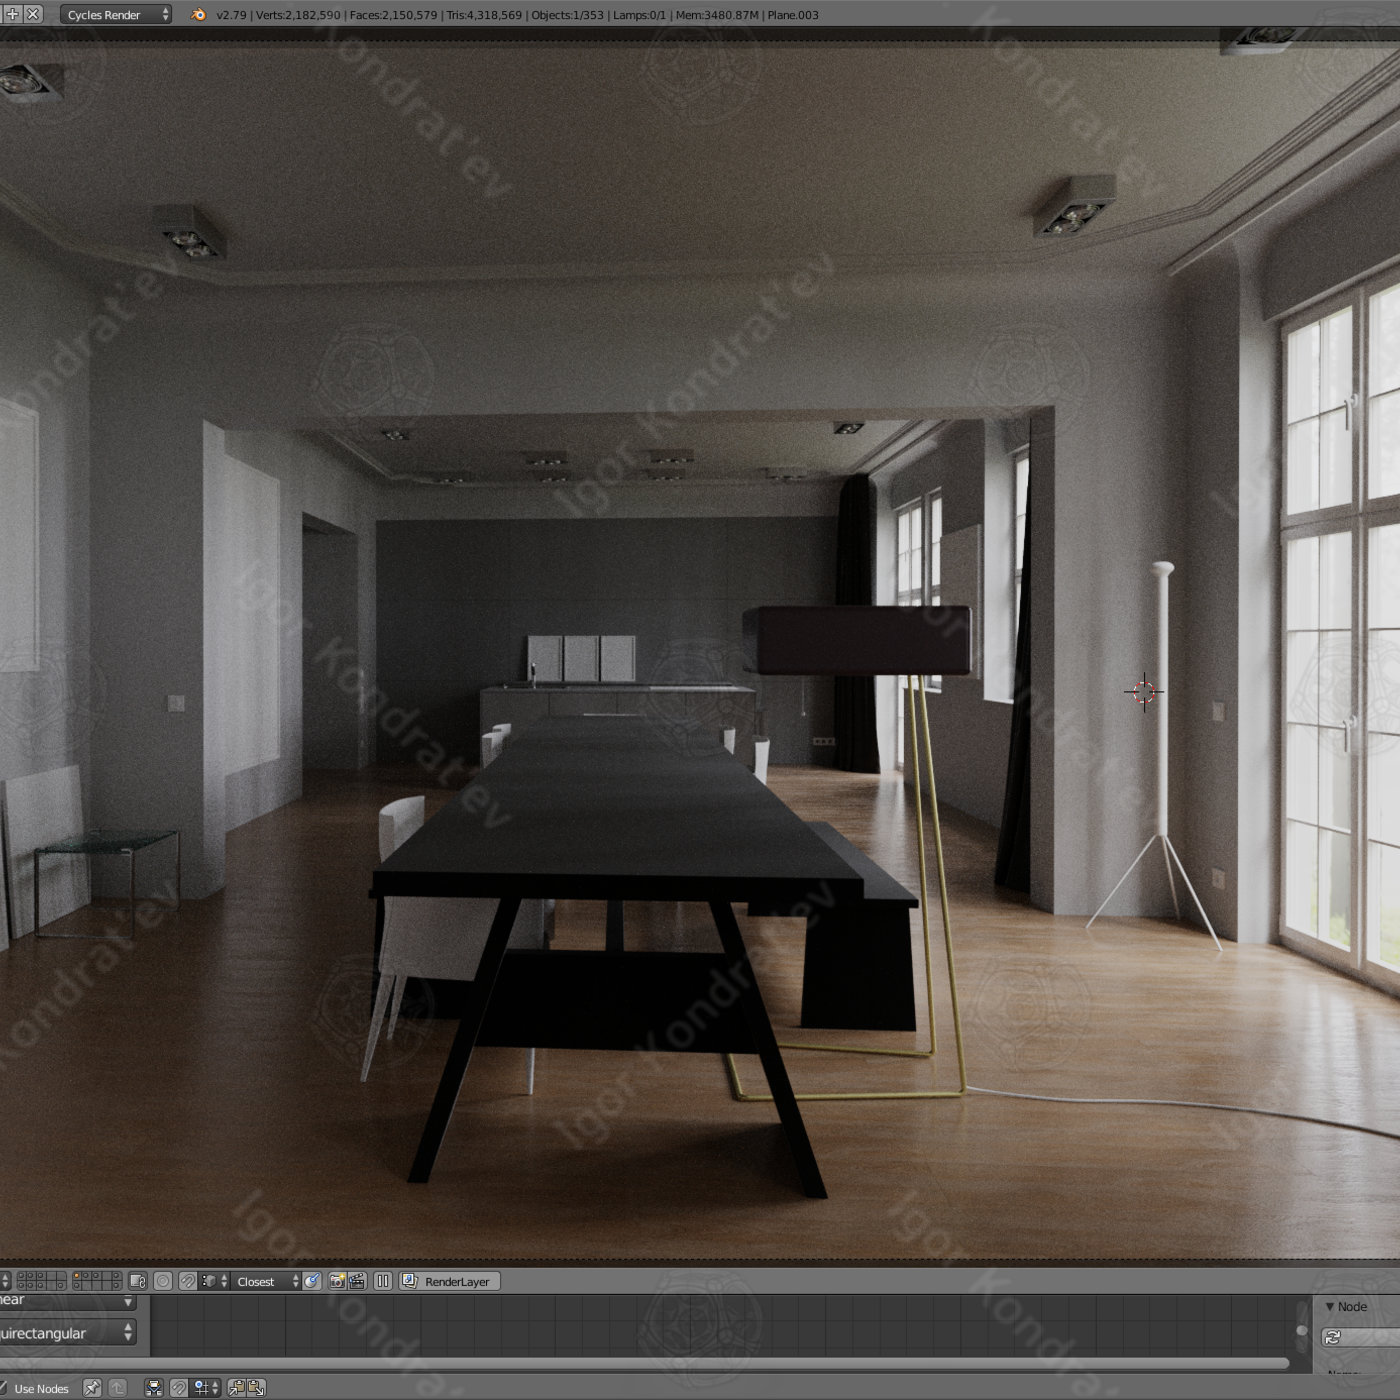 Berlin apartments 3D model and render (replica by real reference)